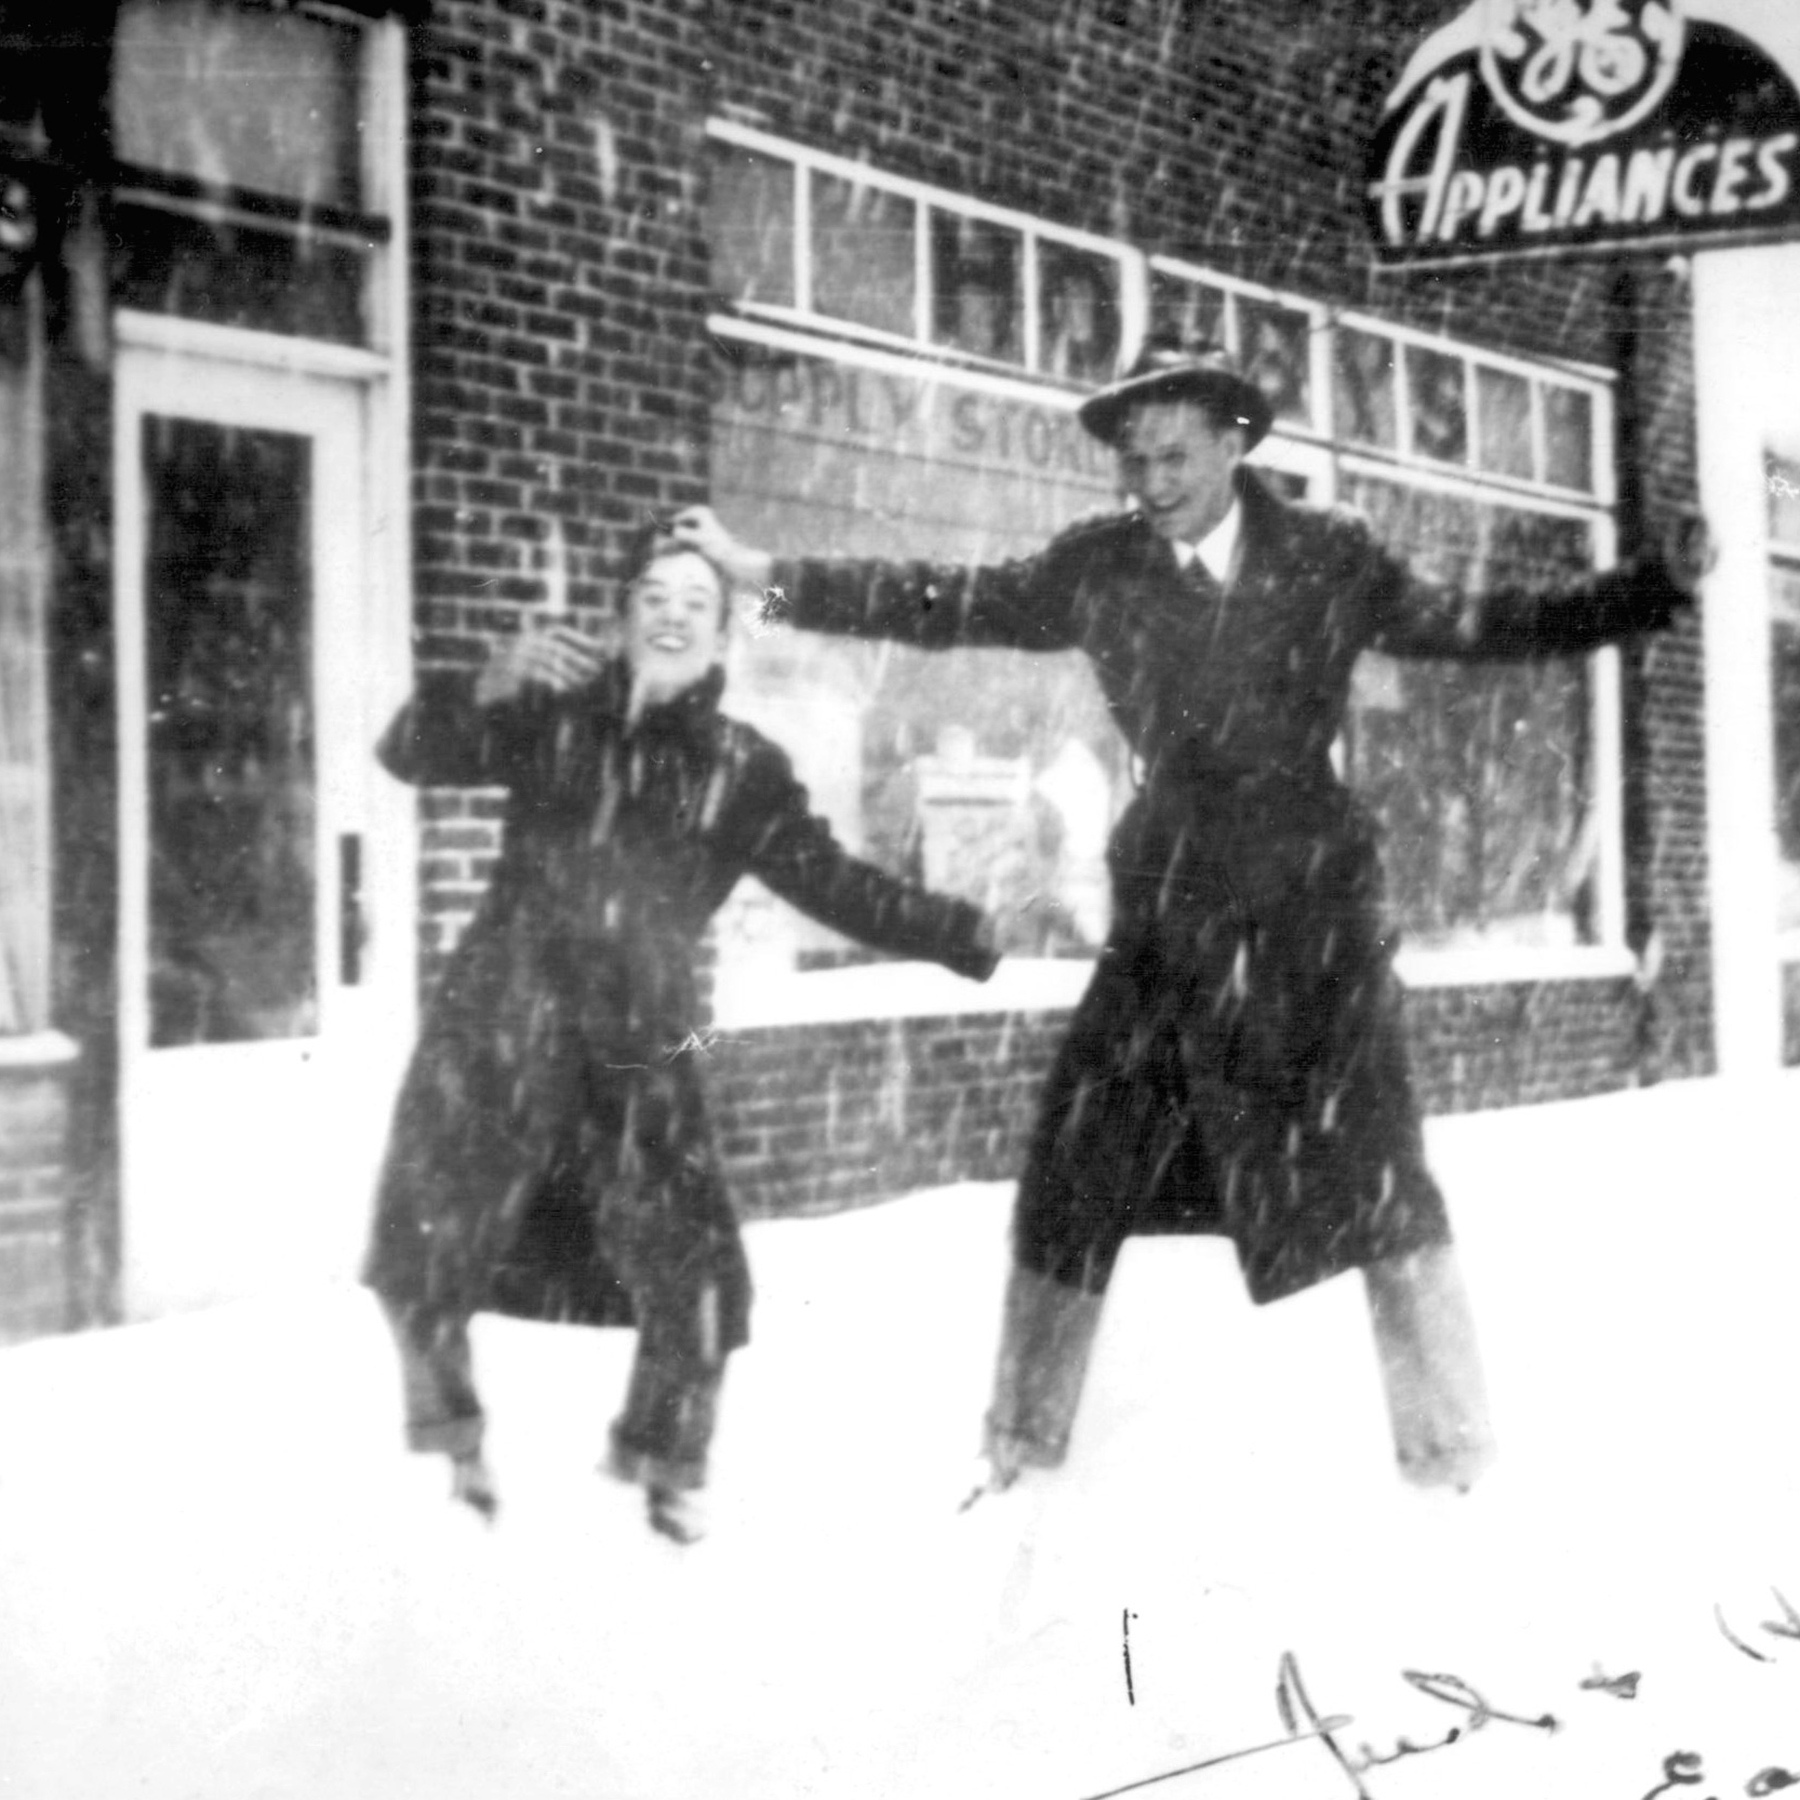 Snowball fight in Cary, NC circa 1940.